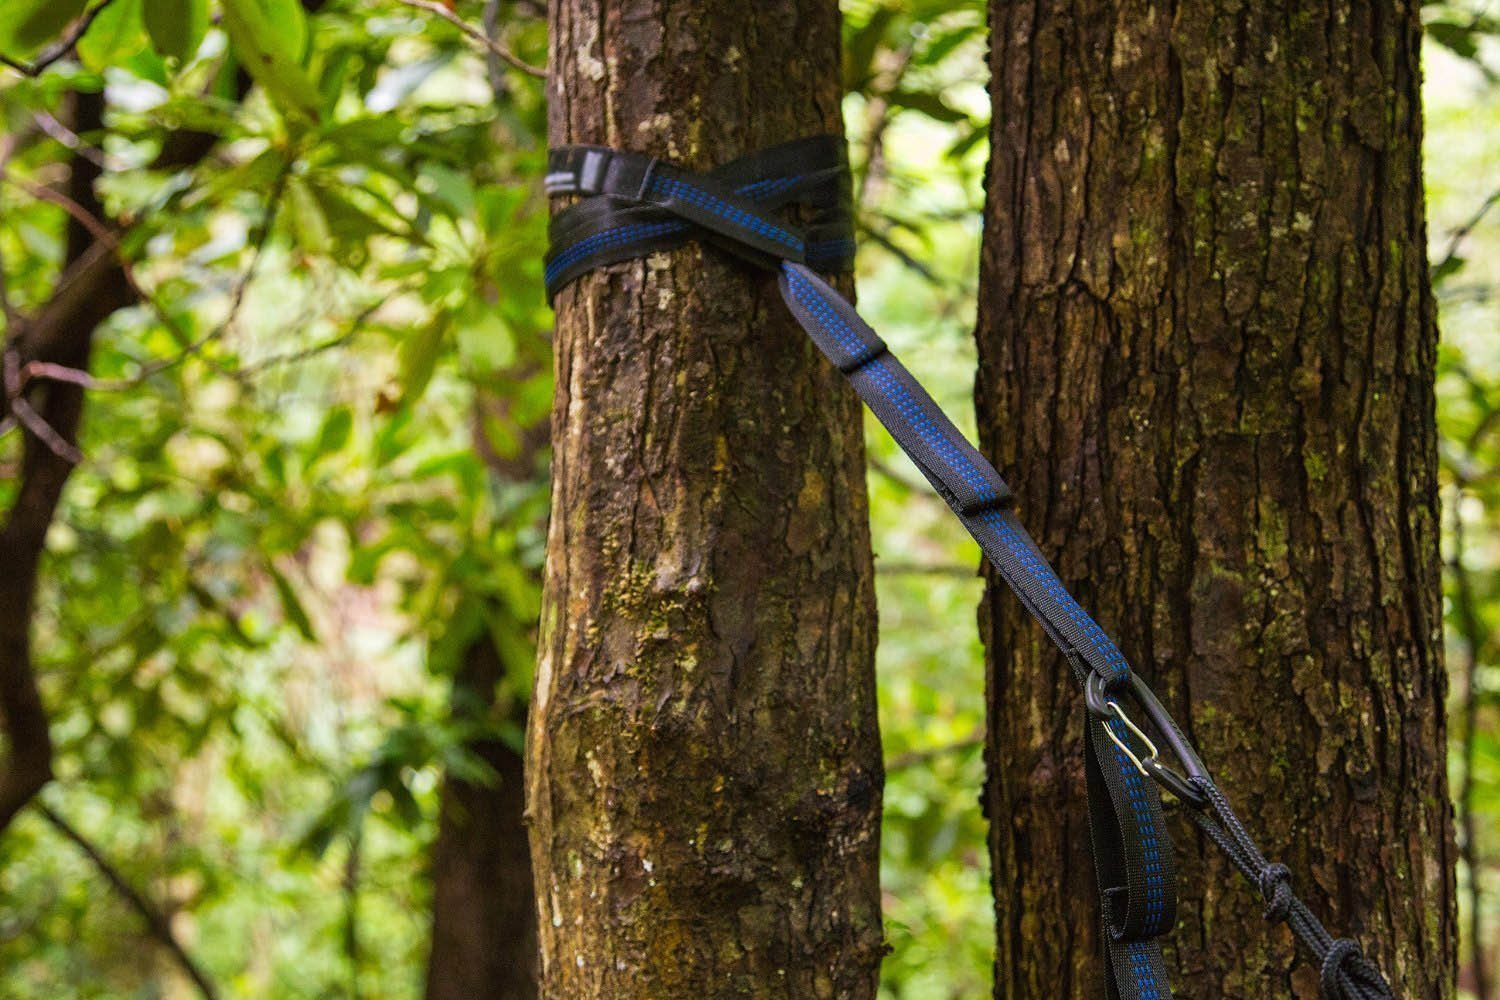 amazon     top rated iskys atlas slap straps suspension system  designed for eno eagle nest outfitters hammocks also works for most of the hammocks on the     amazon     top rated iskys atlas slap straps suspension system      rh   amazon